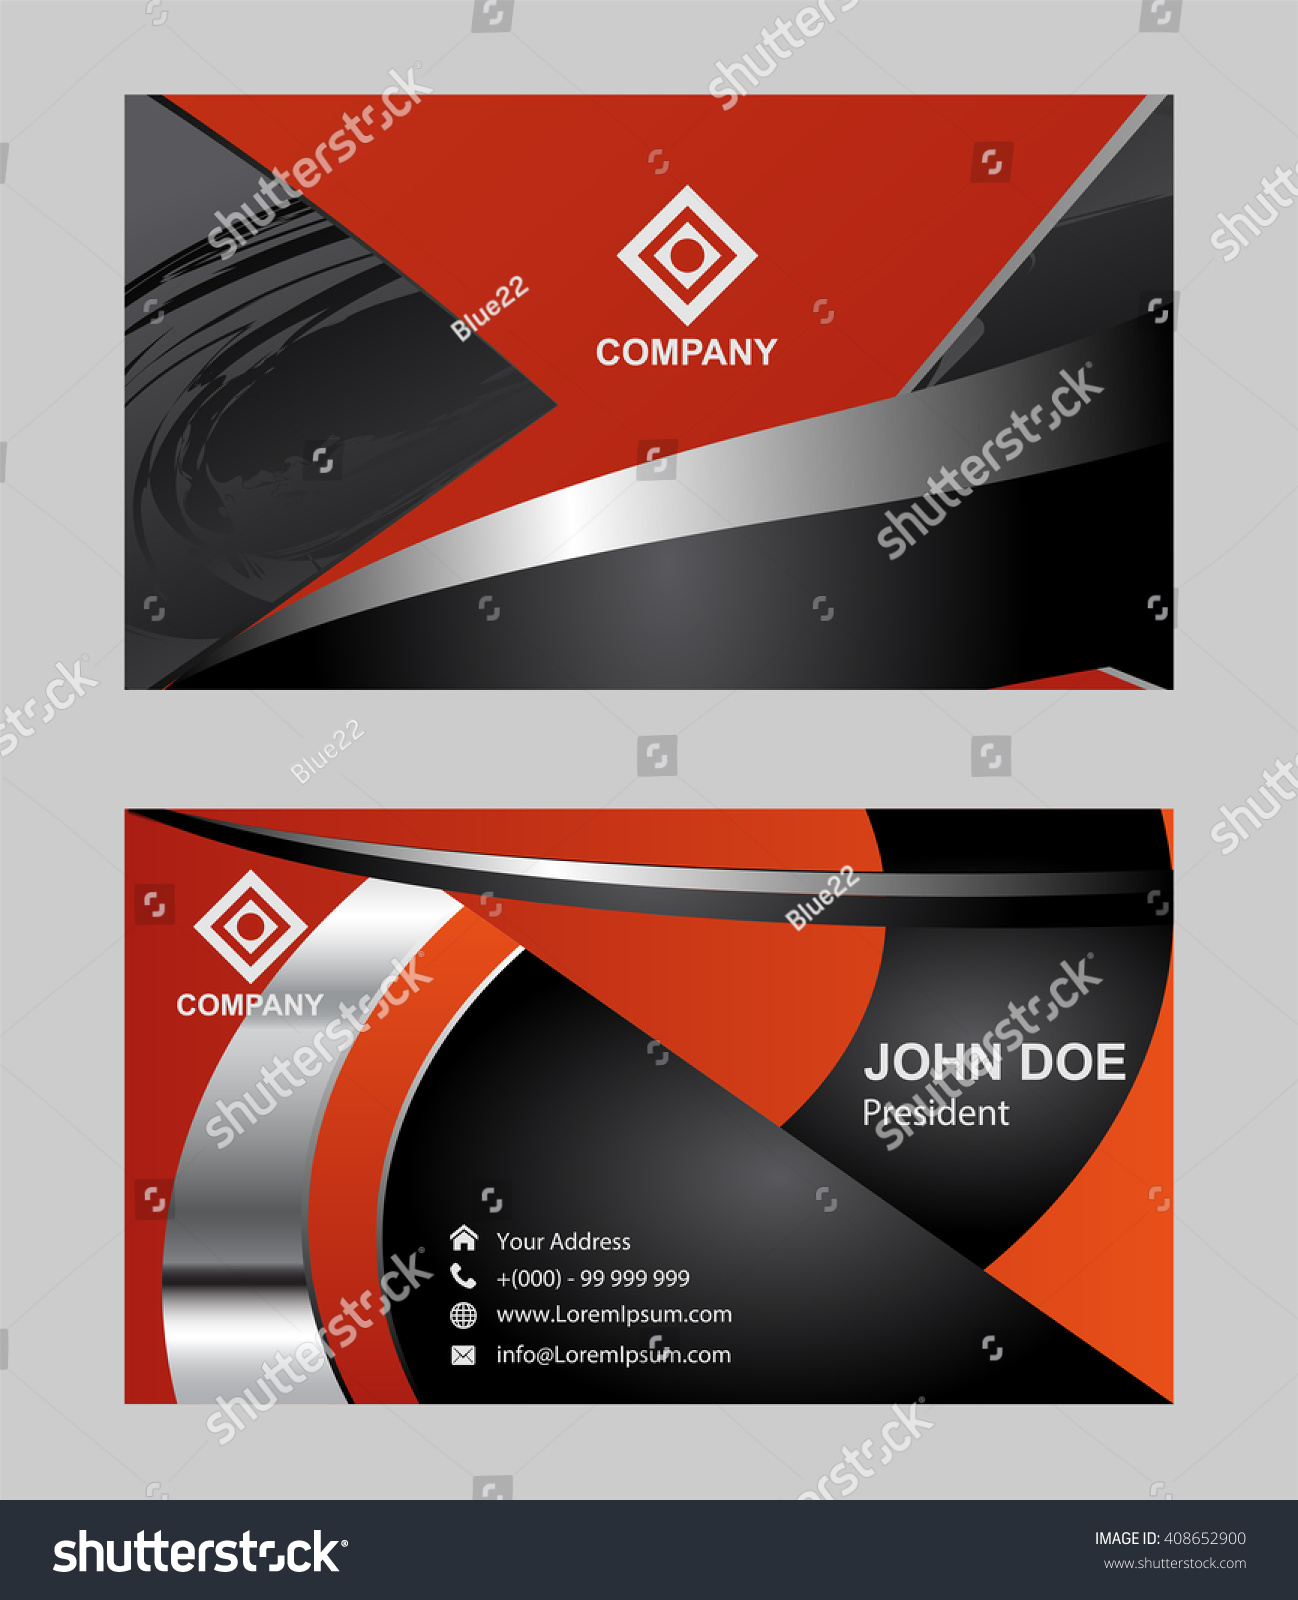 Business Card Design With Photo Images - Free Business Cards